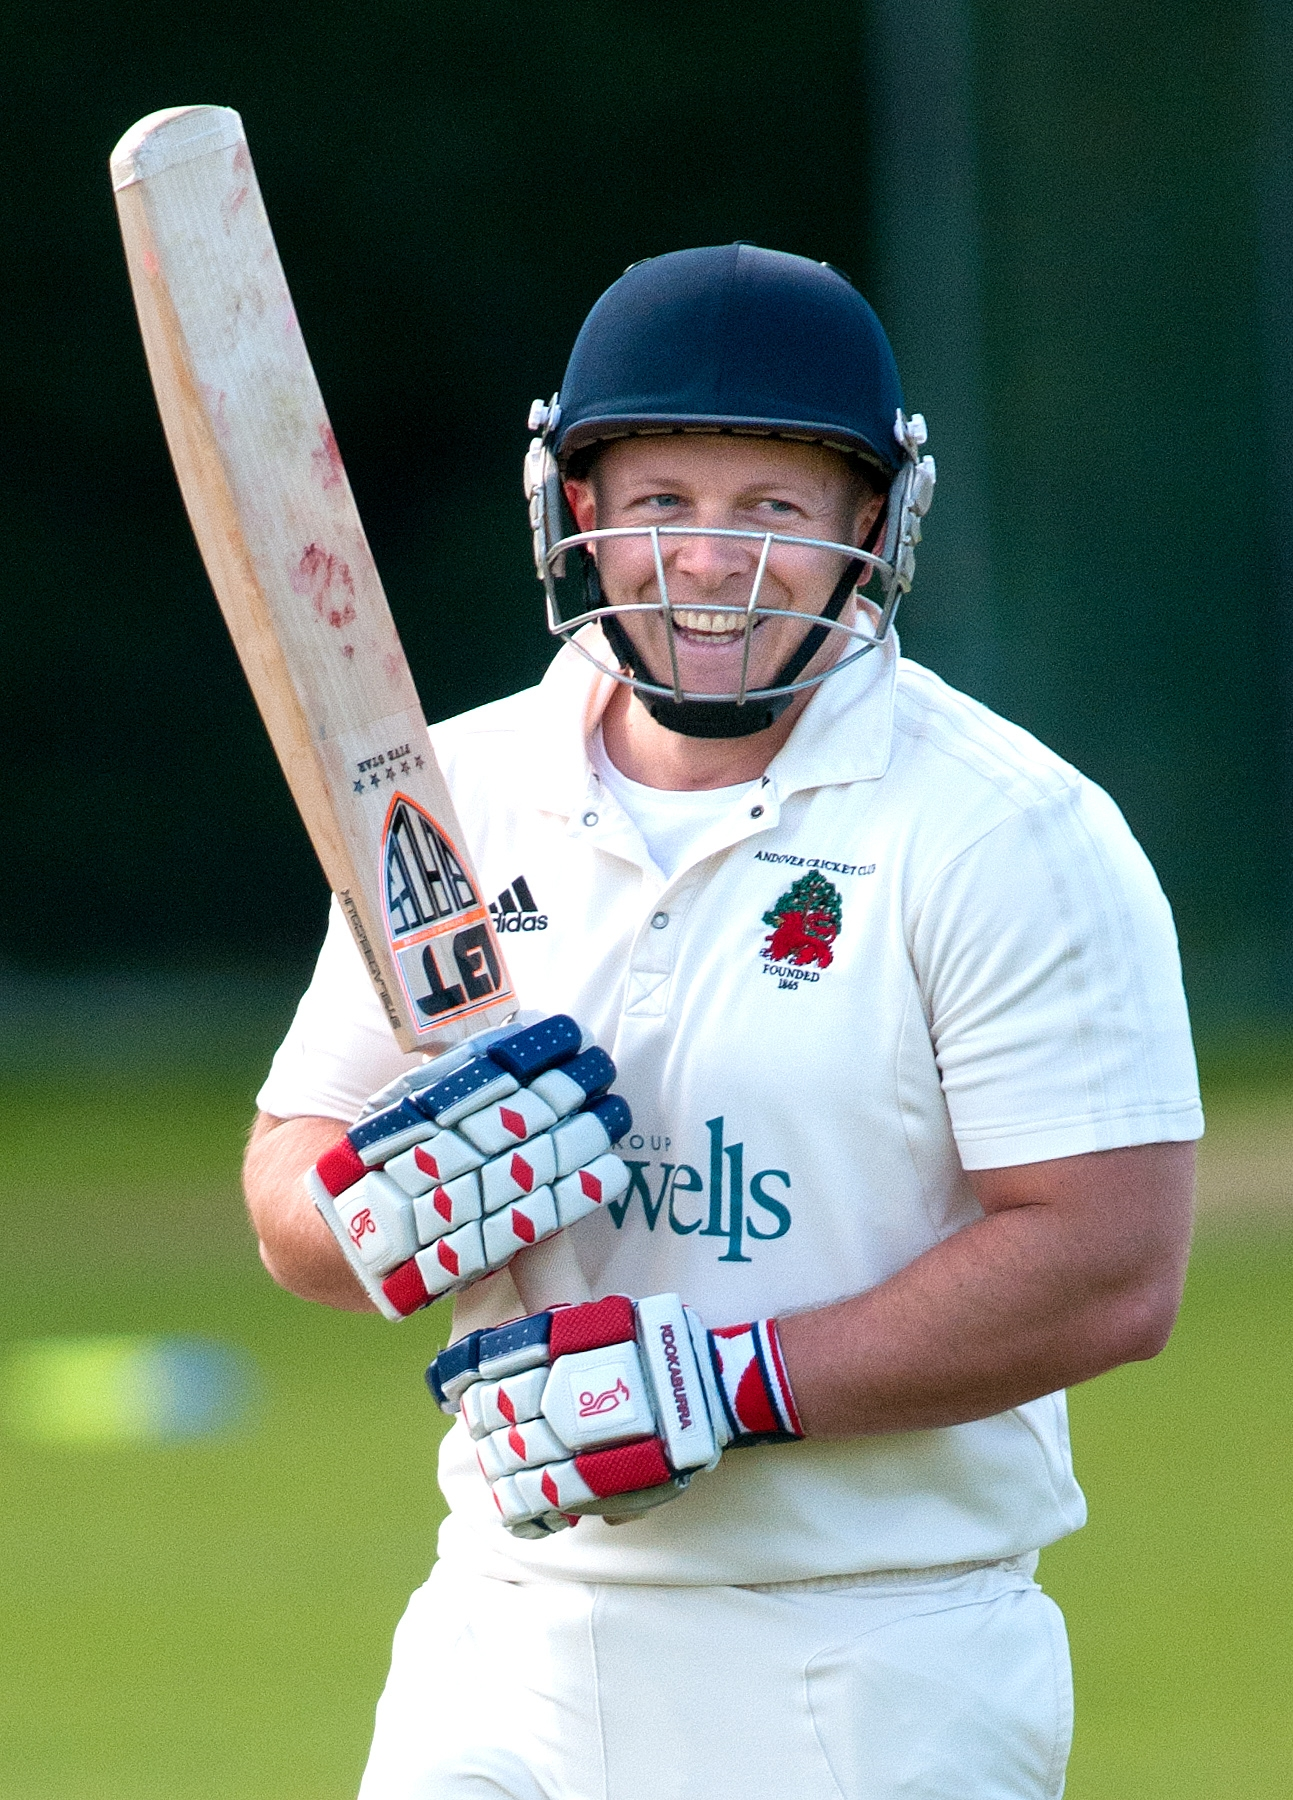 Ali Hooper defied injury to make 67 against Sarisbury